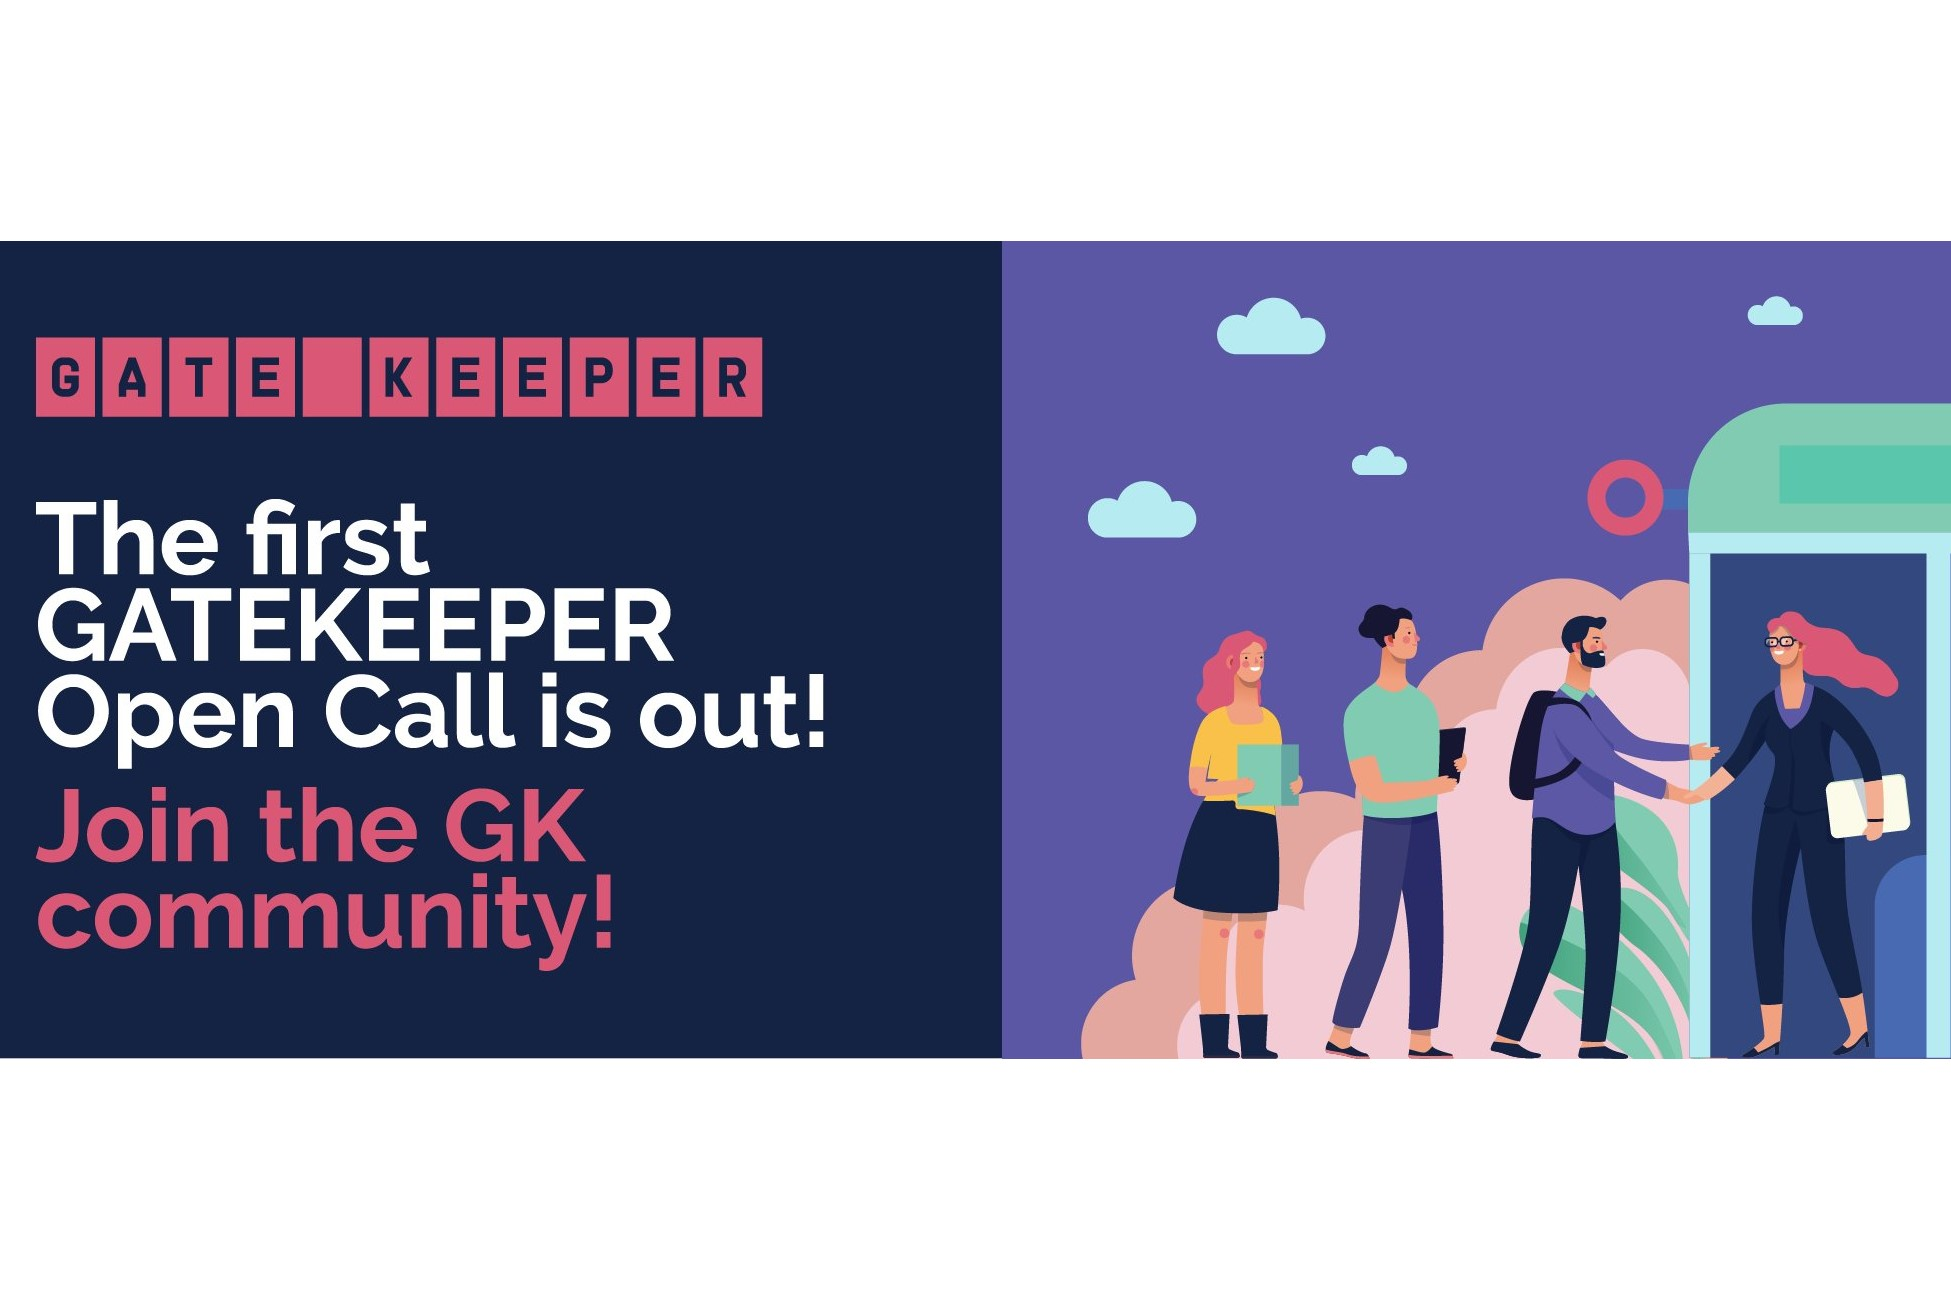 The GATEKEEPER 1st Open Call is now open!